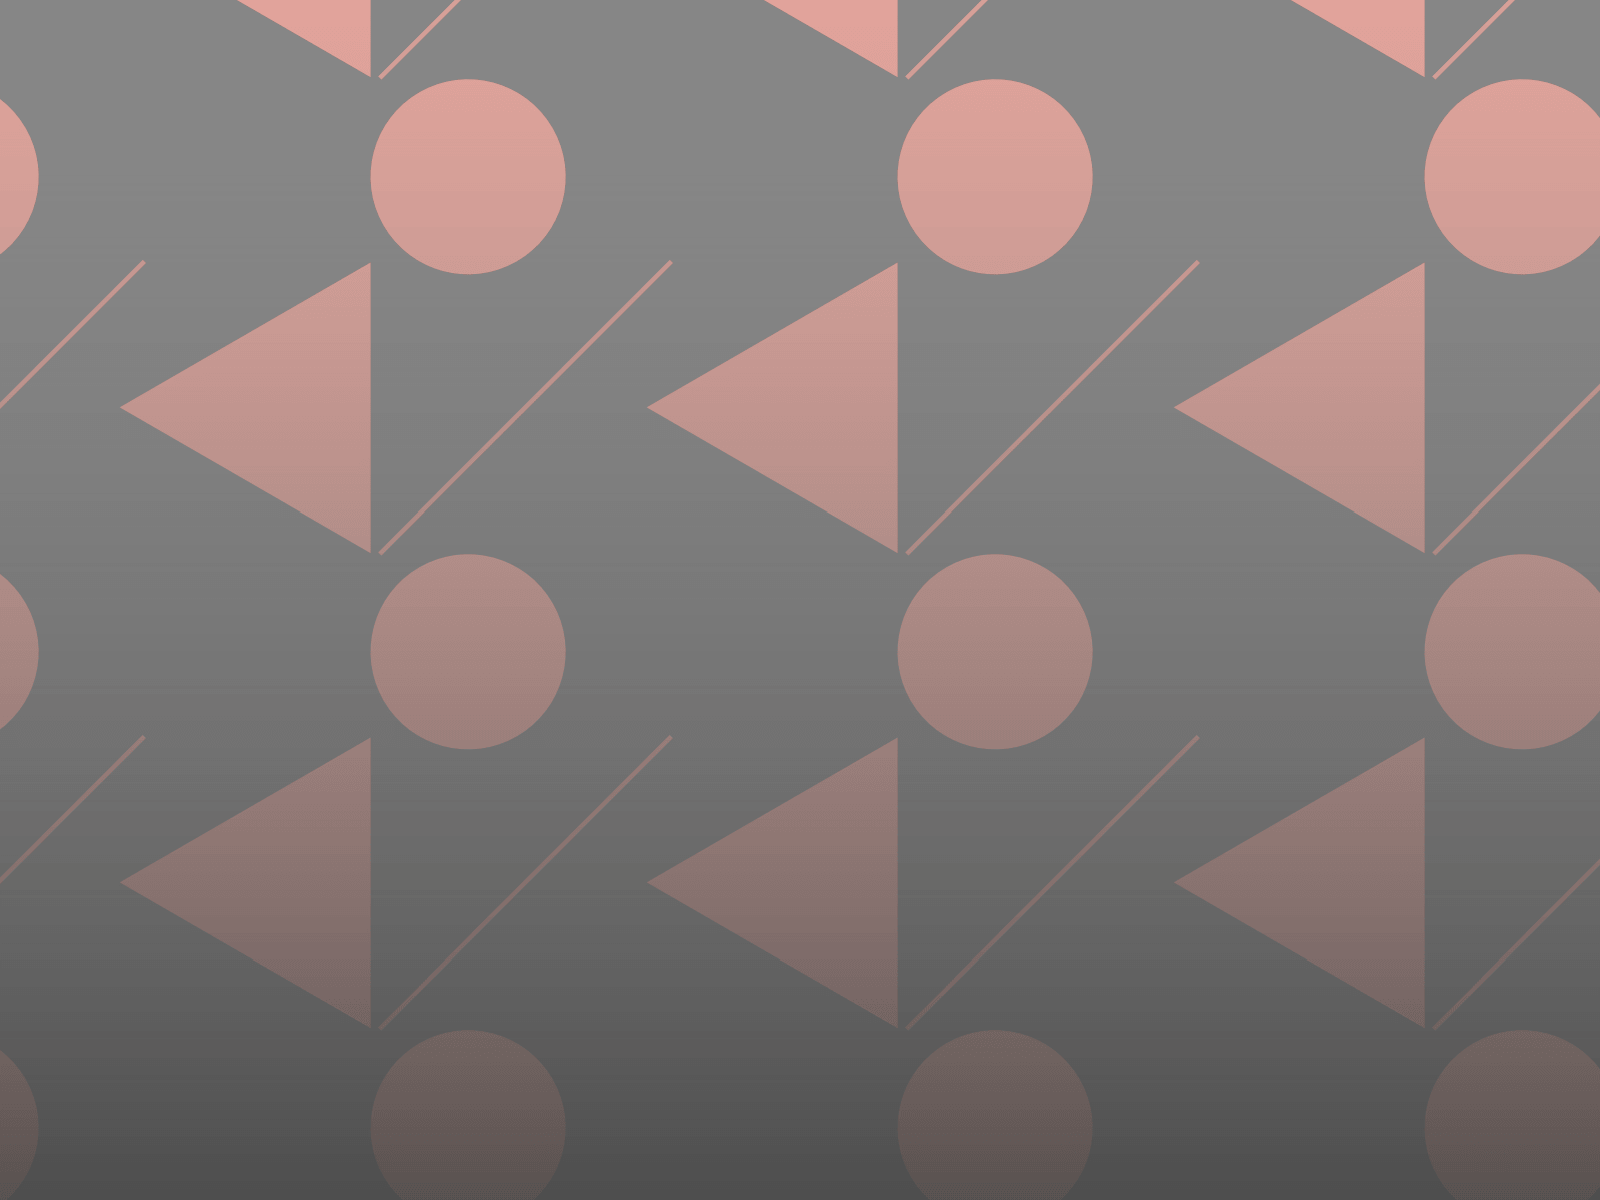 Geometric pattern with fading gradient